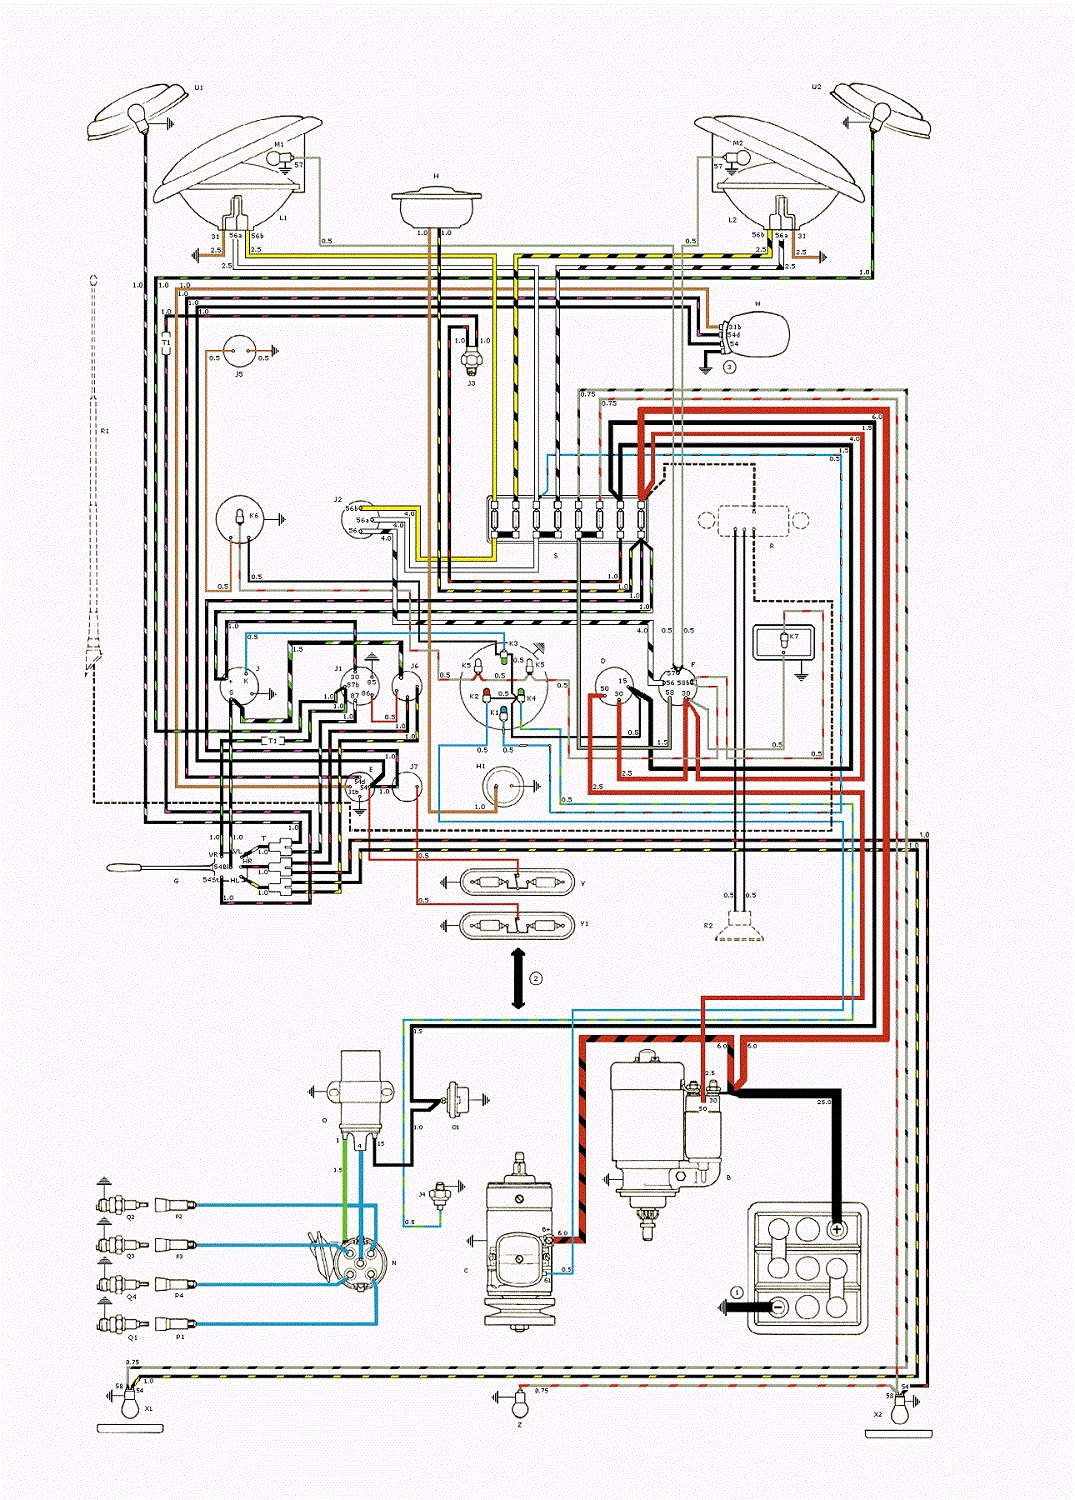 Type 2 Wiring Diagrams 1957 Vw Diagram